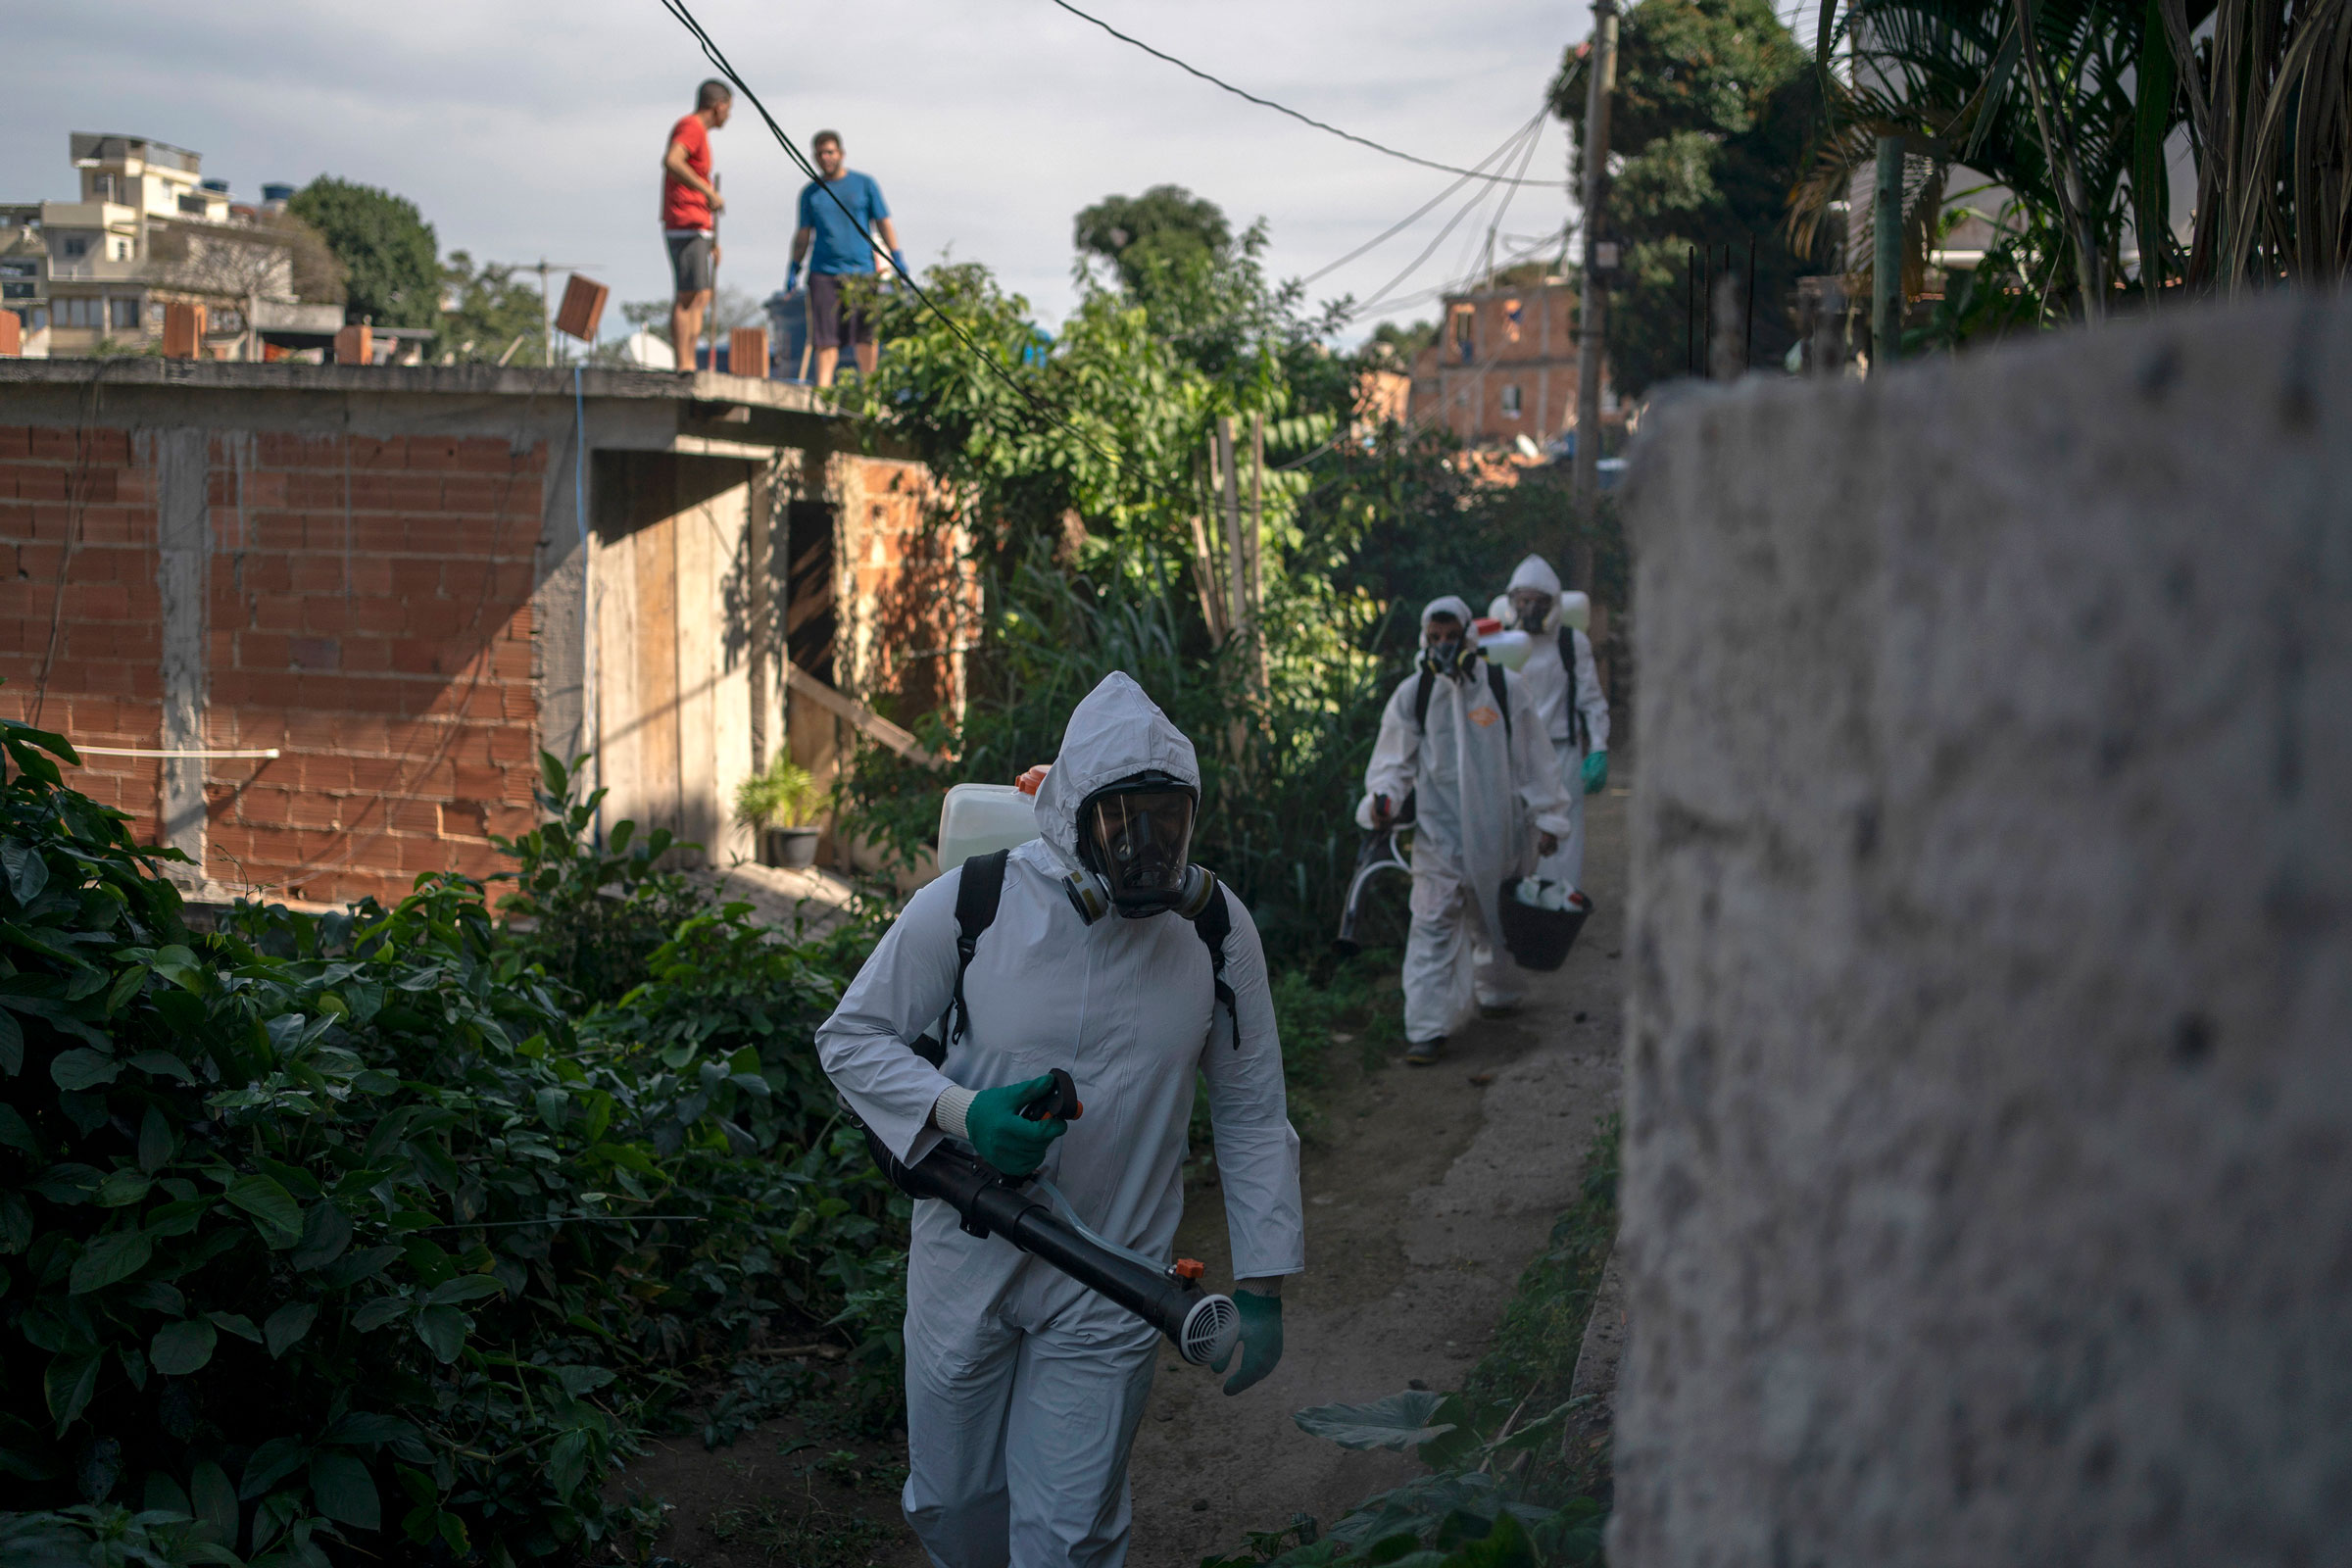 Volunteers spray disinfectant in a Rio de Janeiro alleyway to help contain the spread of the novel coronavirus on Sunday.